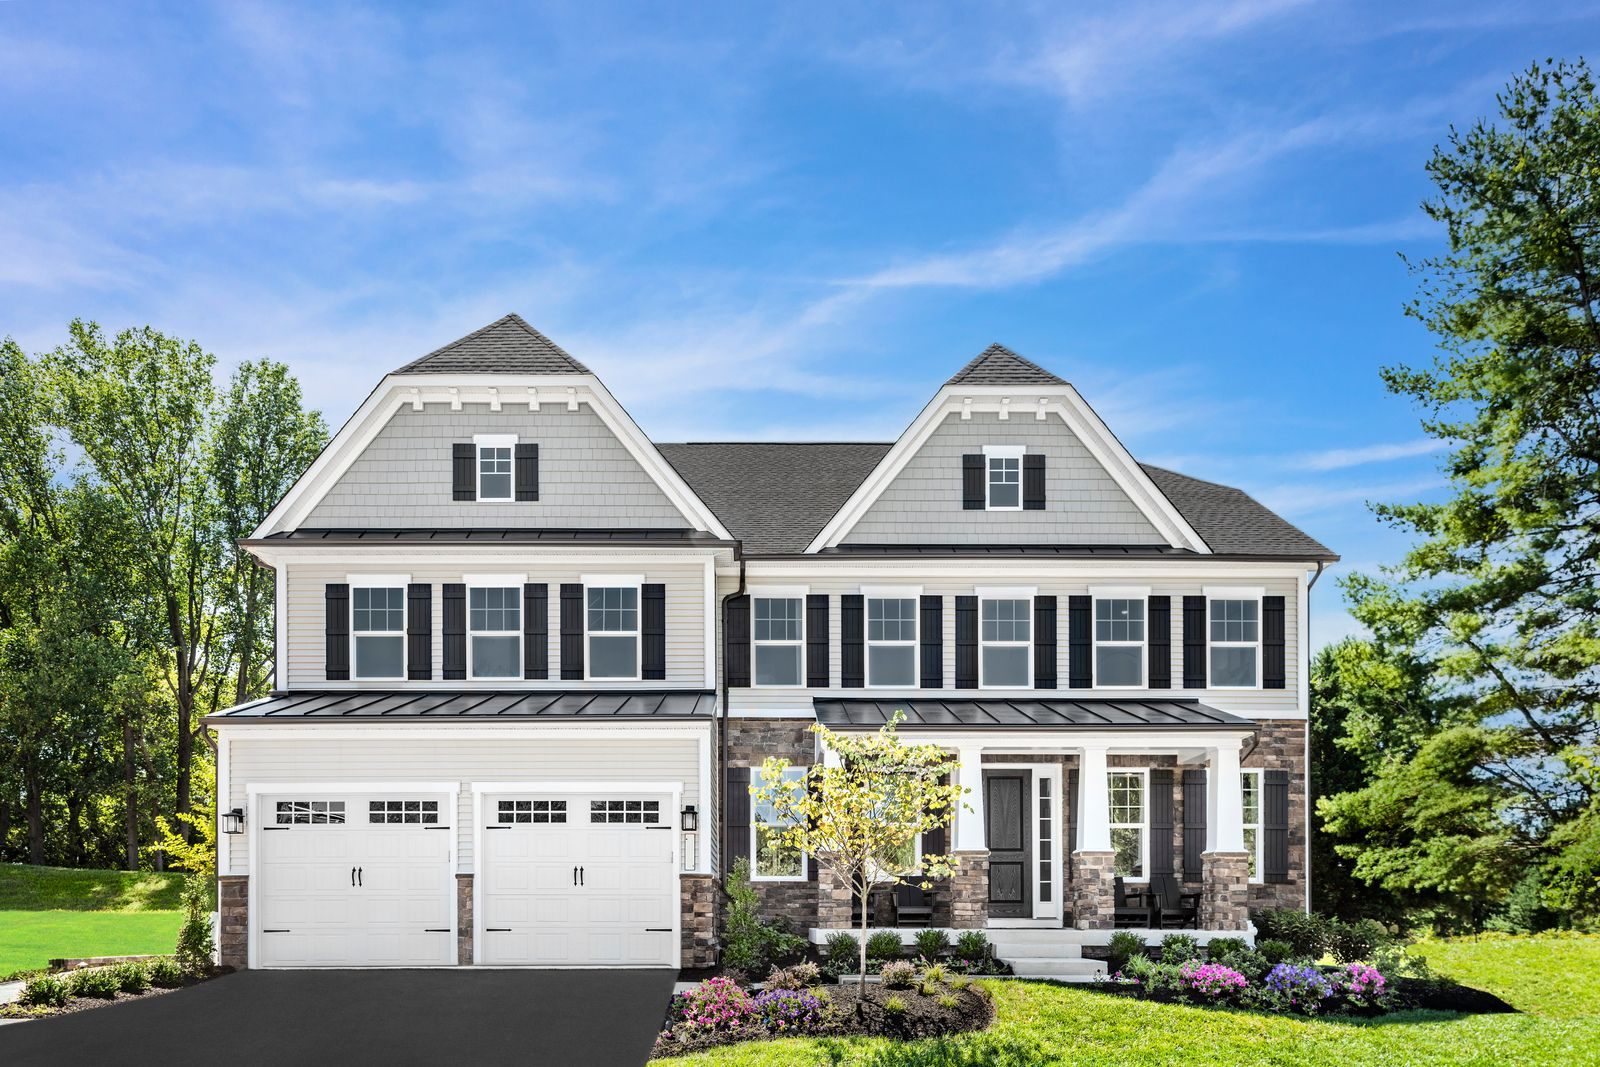 HOWARD COUNTY'S BEST VALUE FOR LUXURIOUS SINGLE FAMILY HOMES:NVHomes proudly presents Centennial Reserve, a private enclave of exquisite single-family homes near ample shops and dining. Sales are now underway.Schedule a visit today!